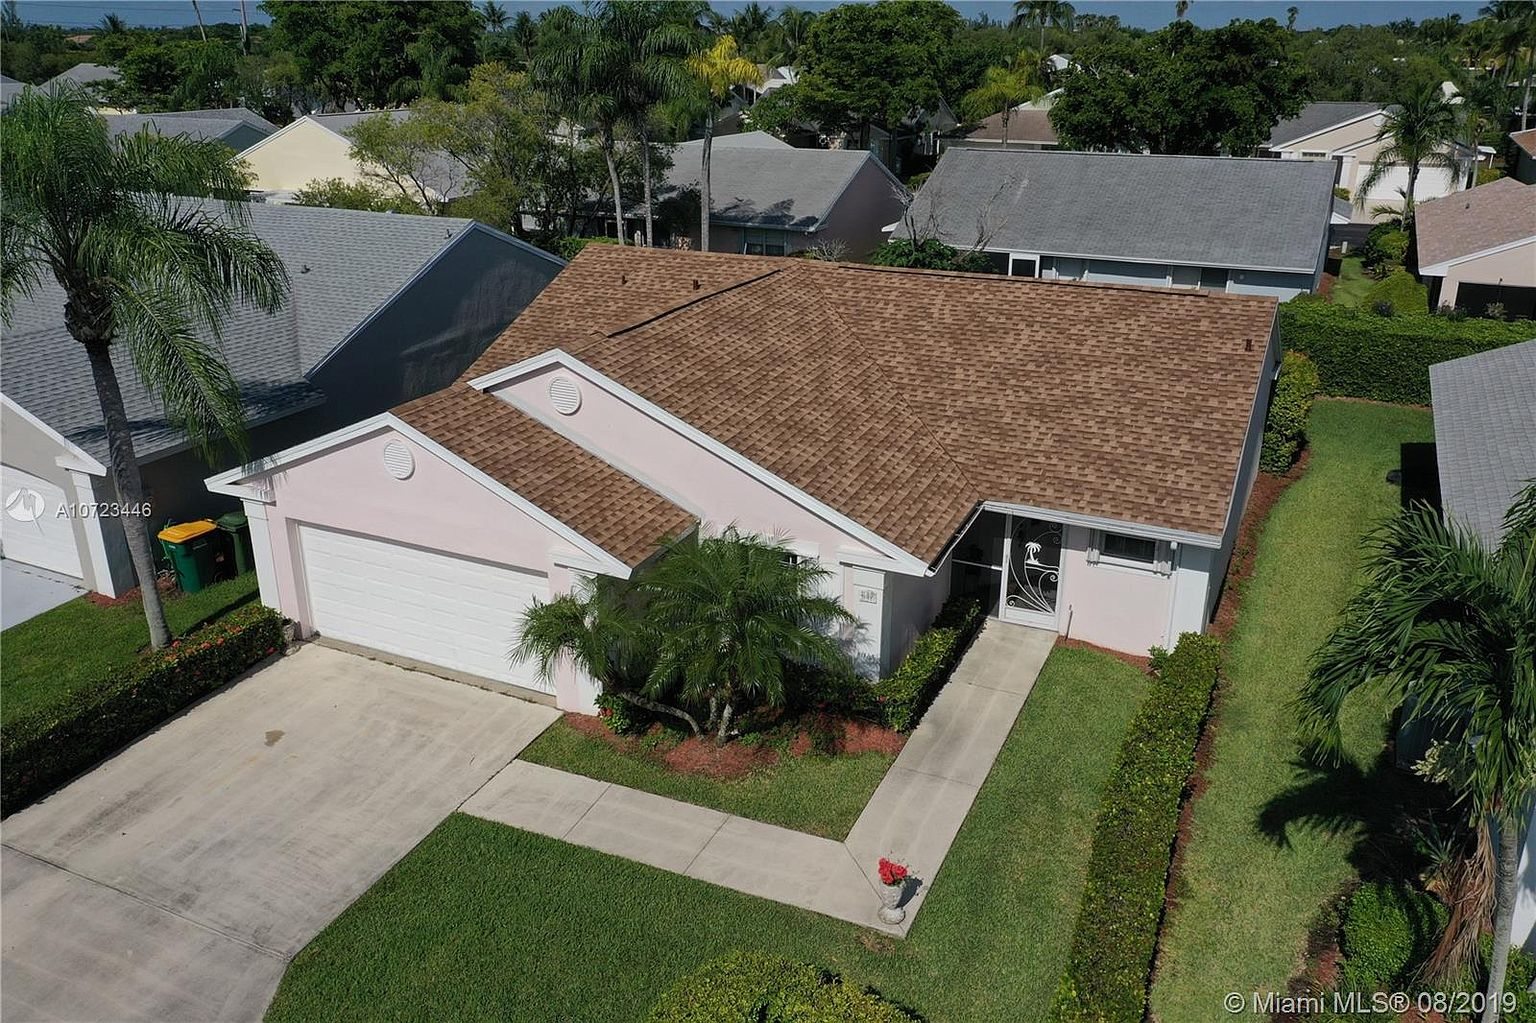 Aerial View of this Property